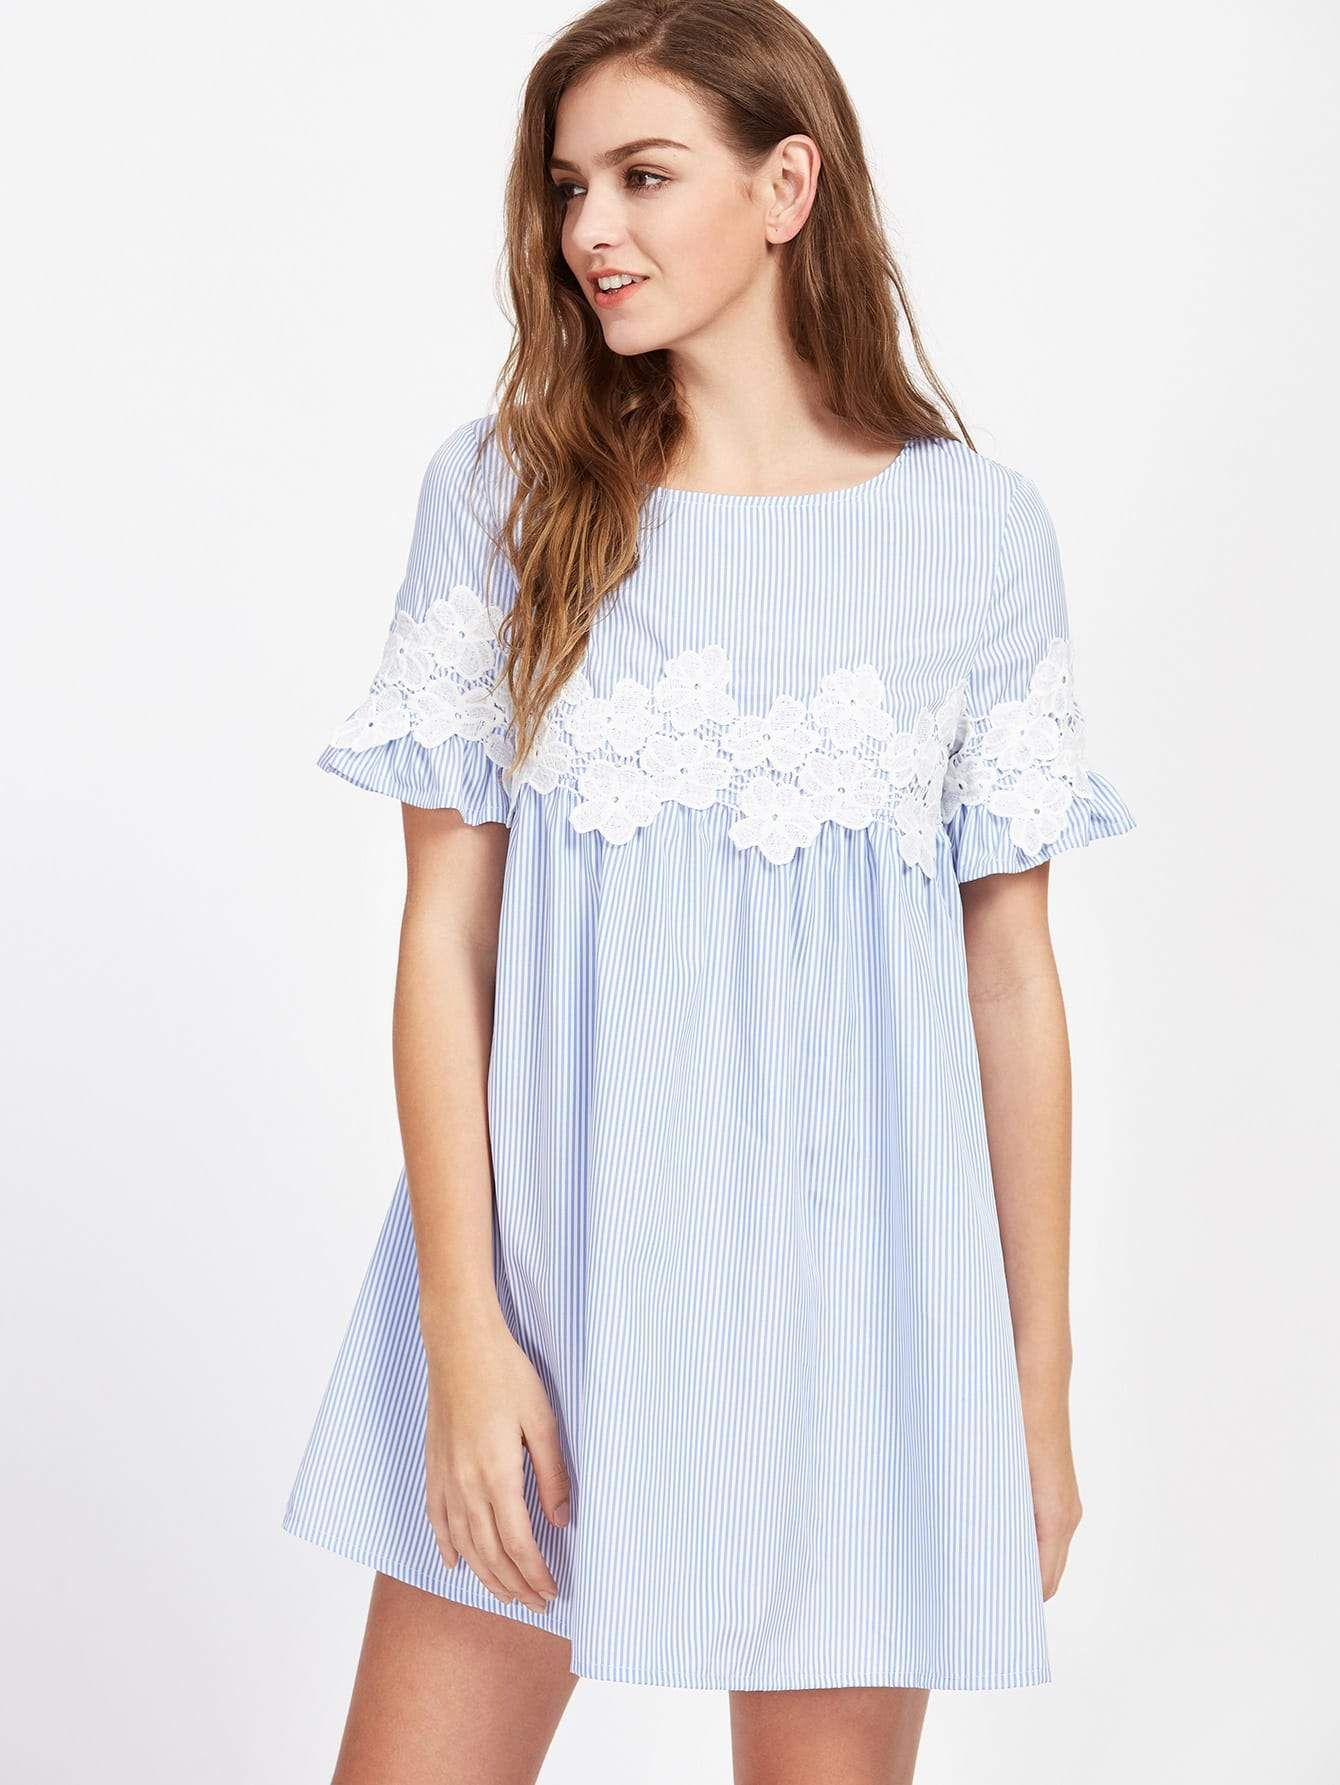 7047fc44200 Floral Lace Applique Frill Sleeve Striped Babydoll Dress